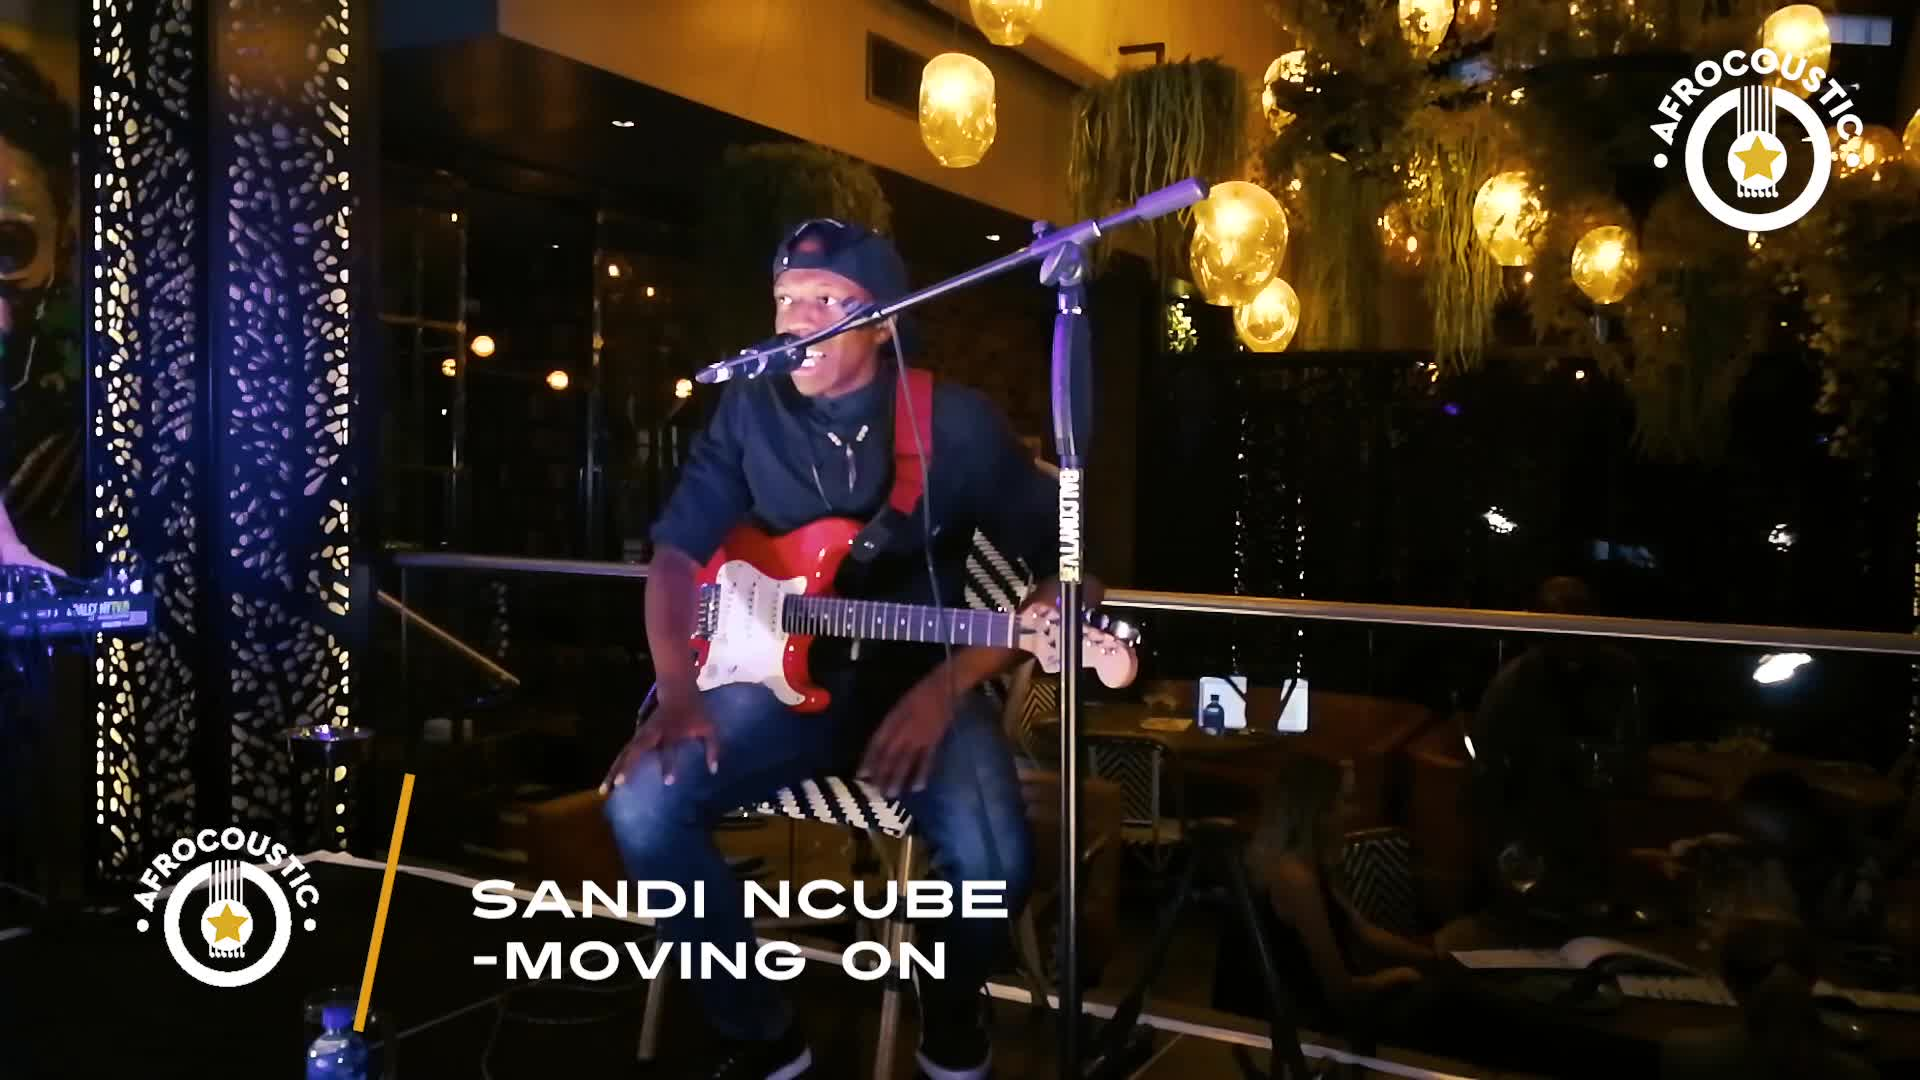 Afrocoustic Sandi Ncube - Moving On